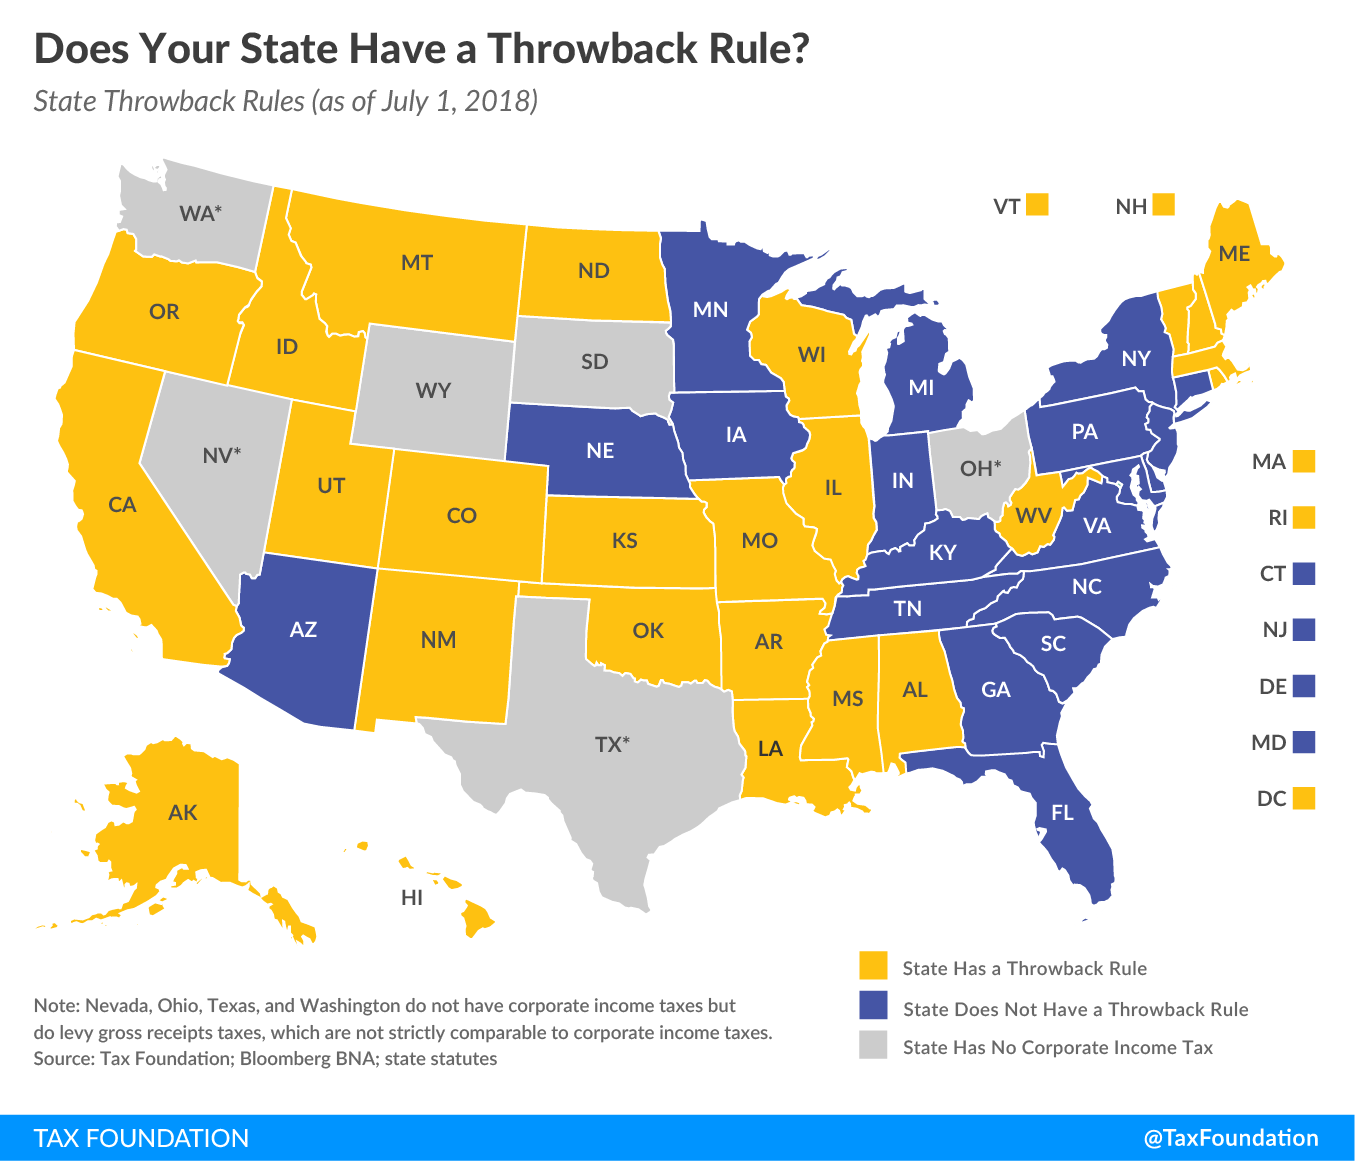 Does Your State Have a Throwback Rule?